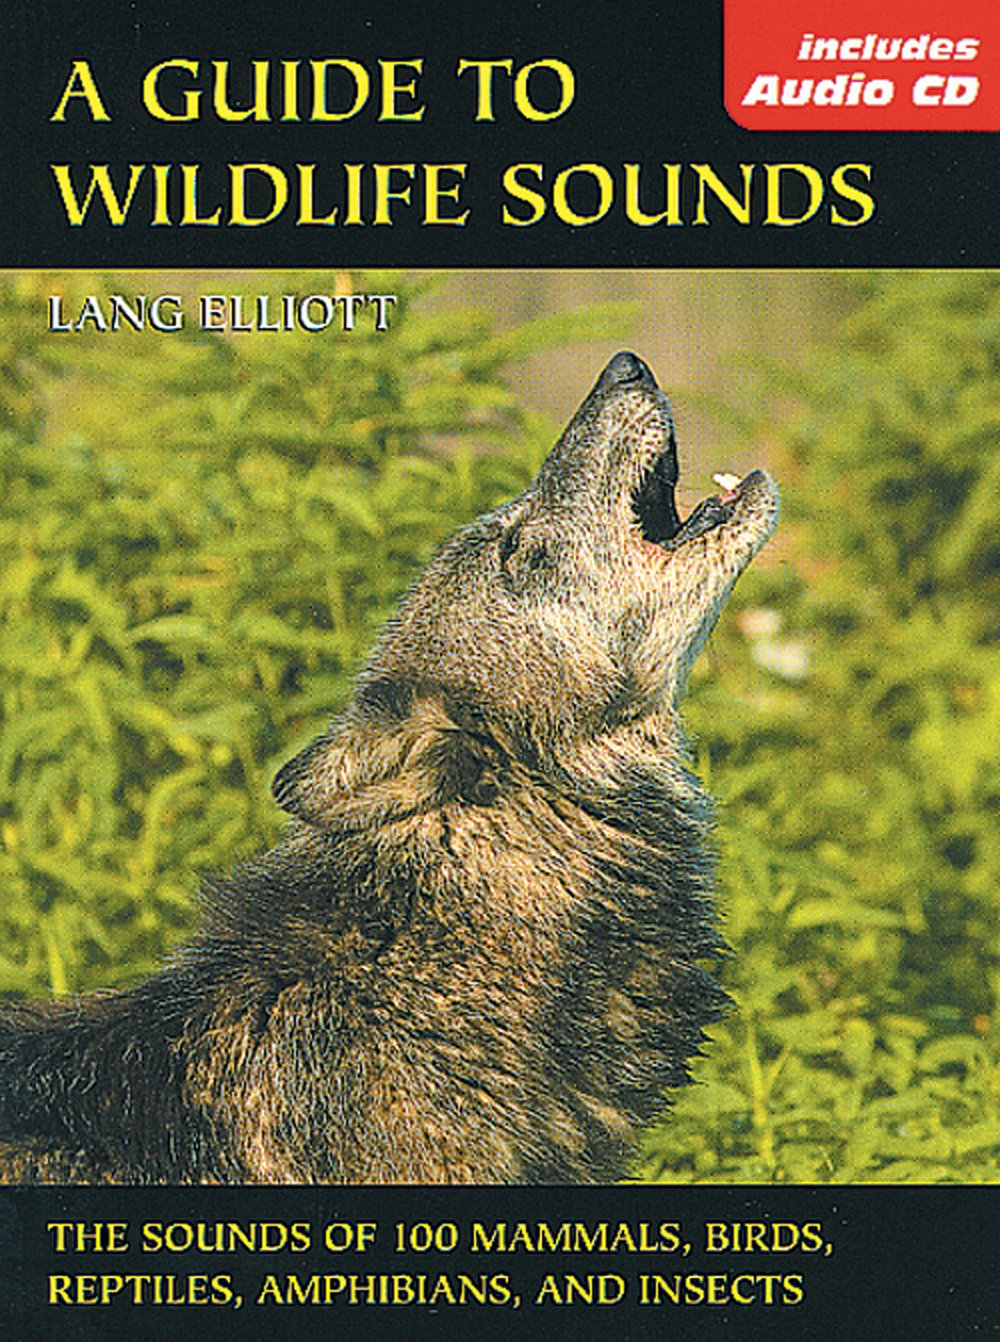 Guide to Wildlife Sounds, A (Booklet and CD)